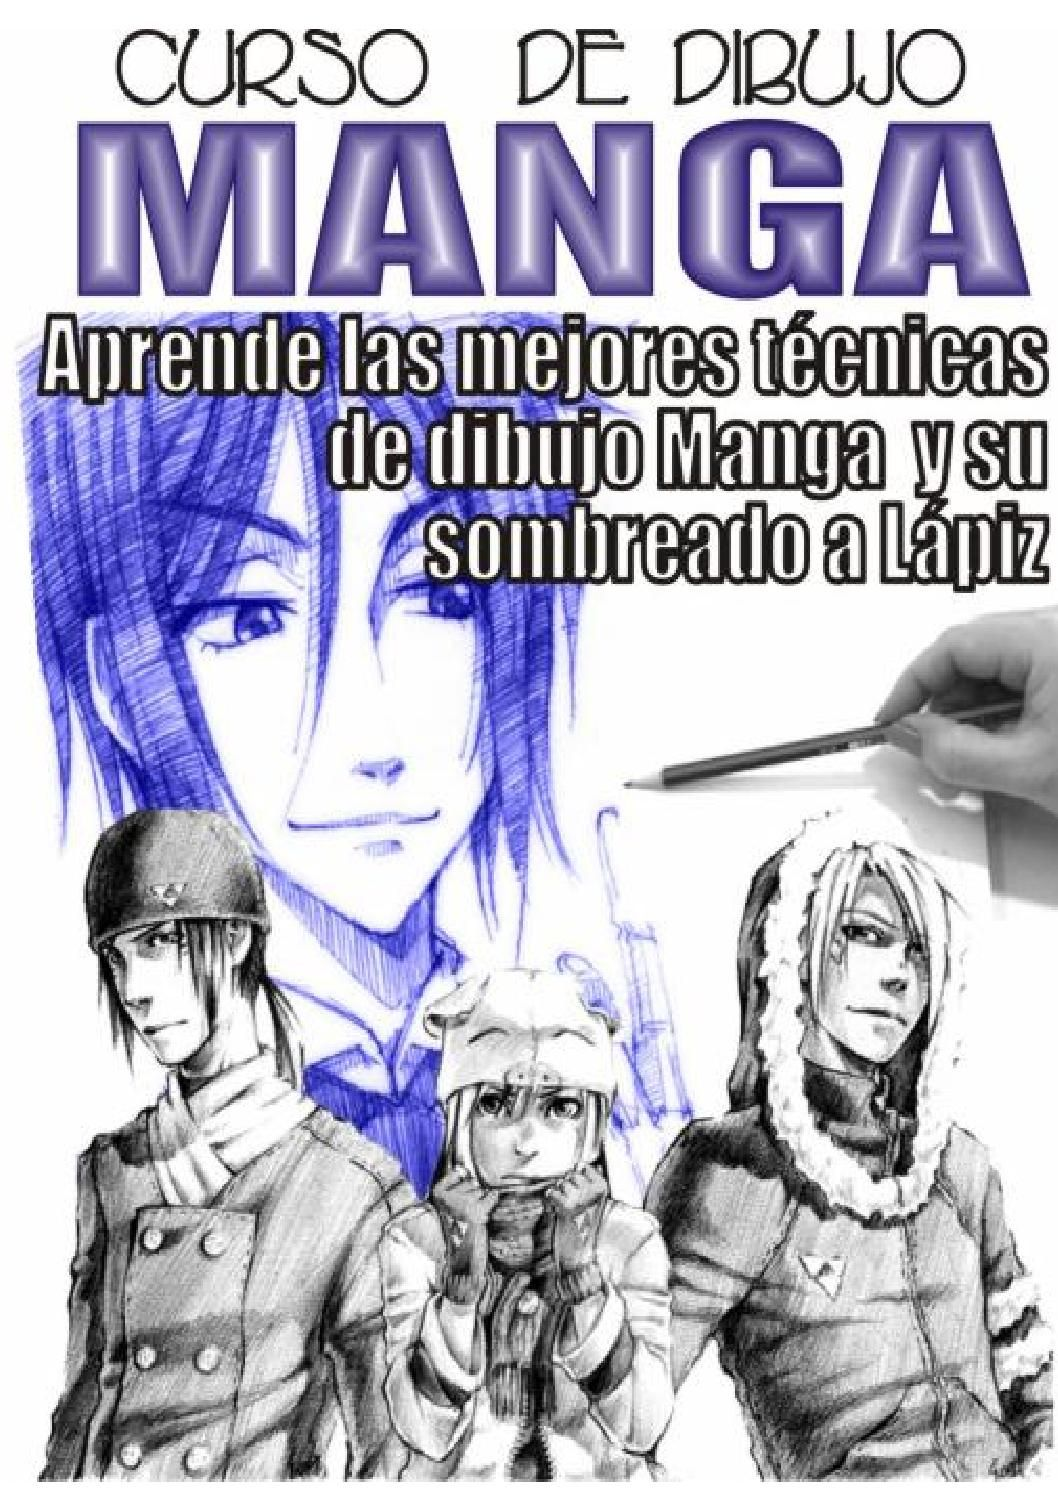 Curso De Dibujo Manga Manga Tutorial Manga Drawing Career Books